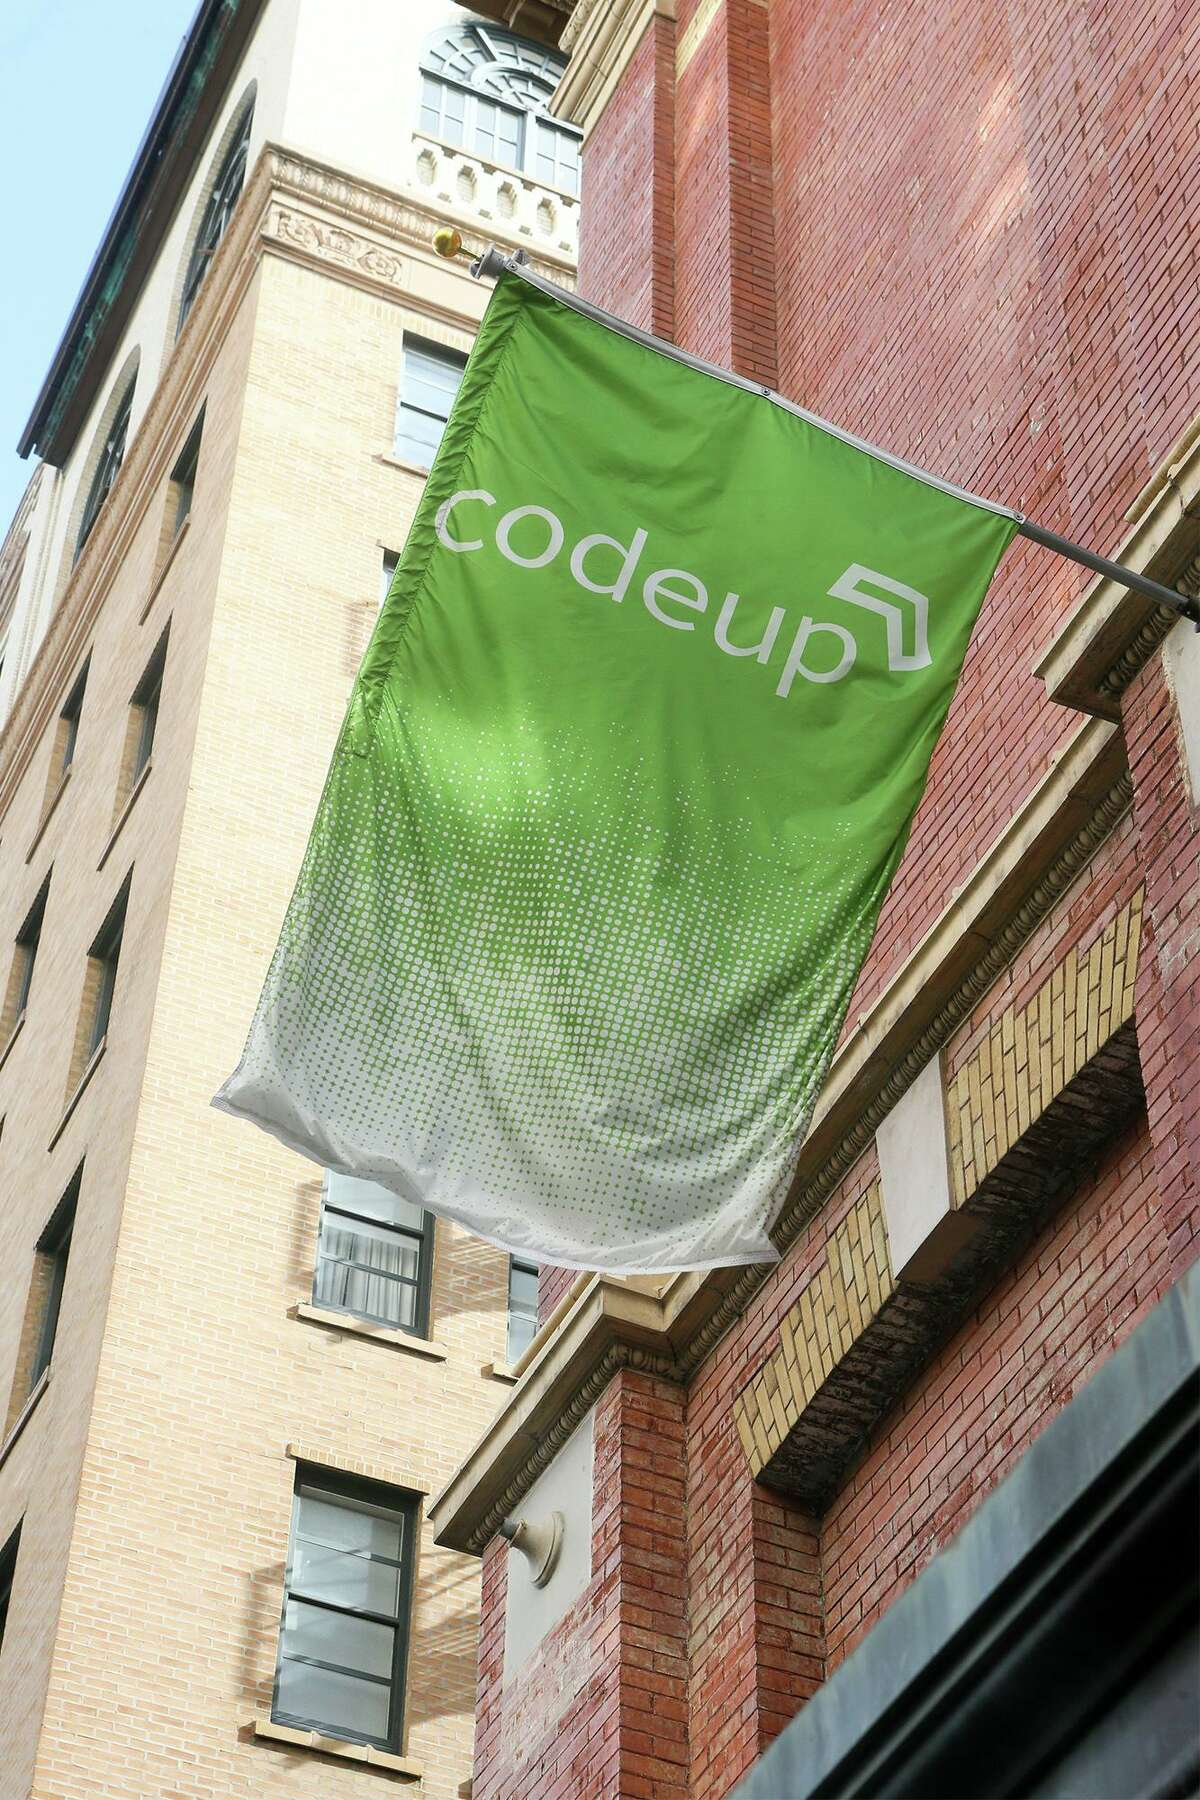 A Copeup sign flying outside the street entrance to Codeup, a company downtown that offers coding bootcamps for aspiring software developers at 600 Navarro St. #350 on Tuesday, Sept. 25, 2018.